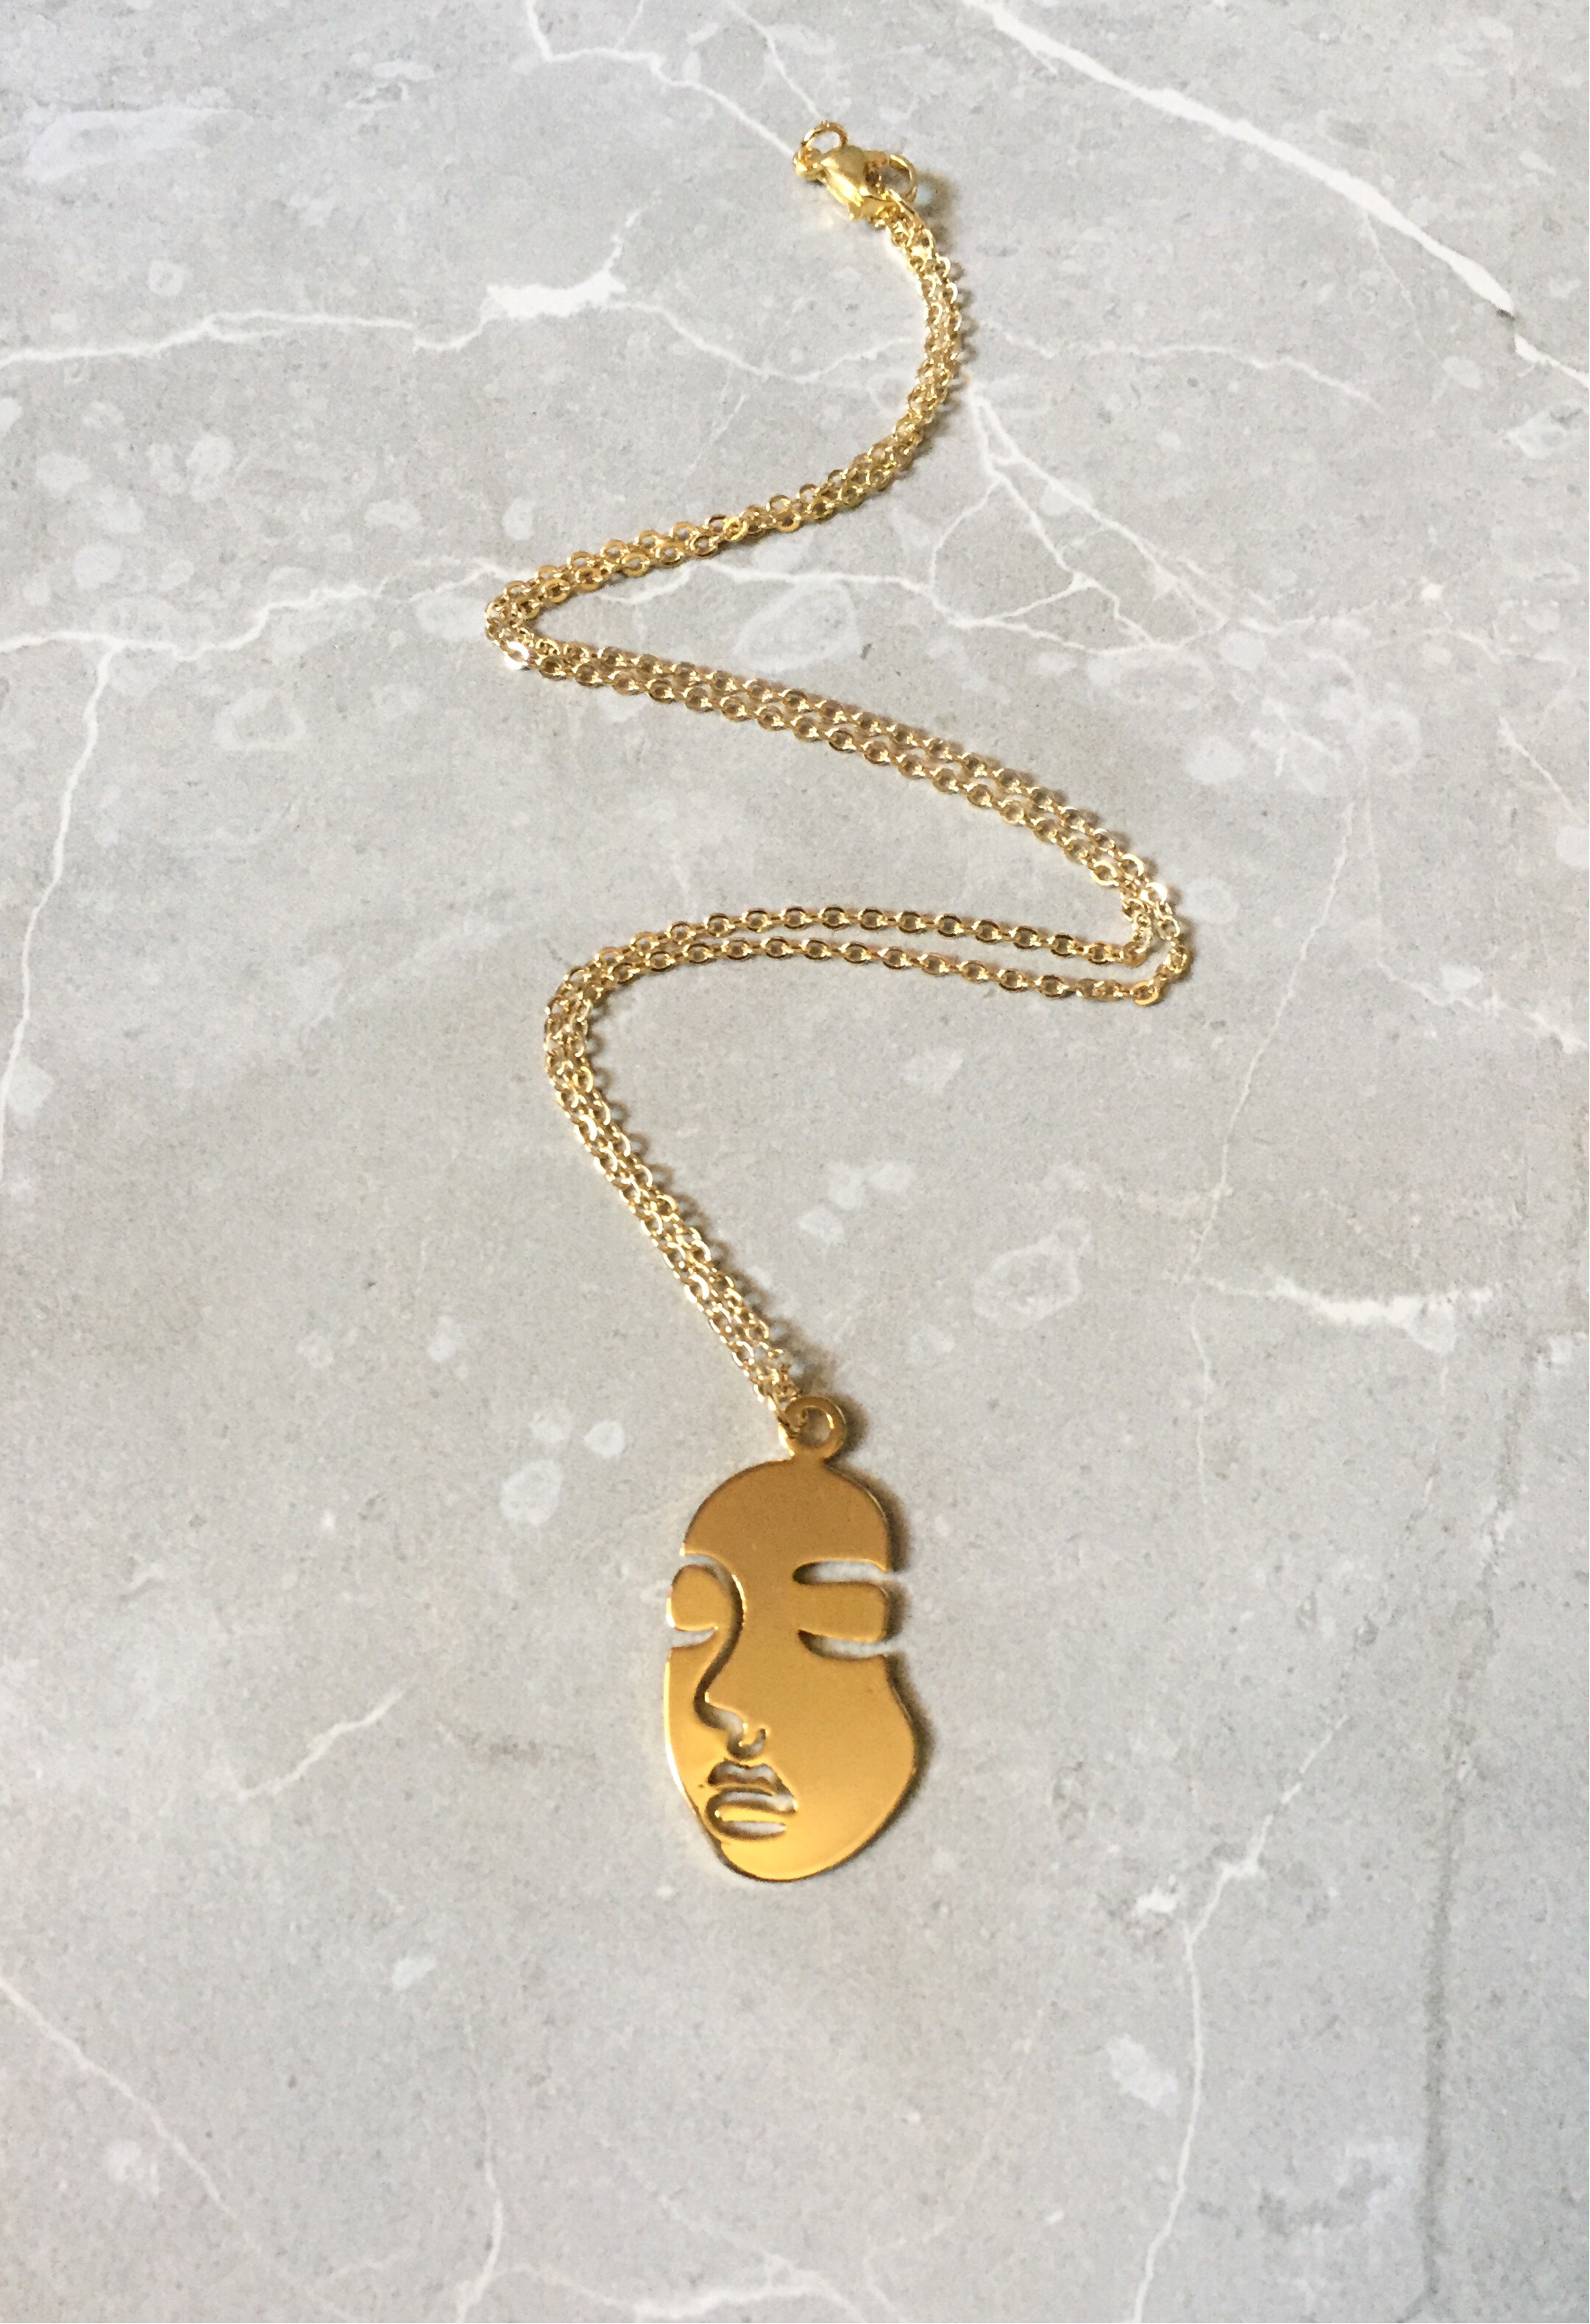 25x45mm 24 k Shiny Gold Plated Face Charms Necklace Findings Abstract Face Outline Pendants GLD620 Earring Findings